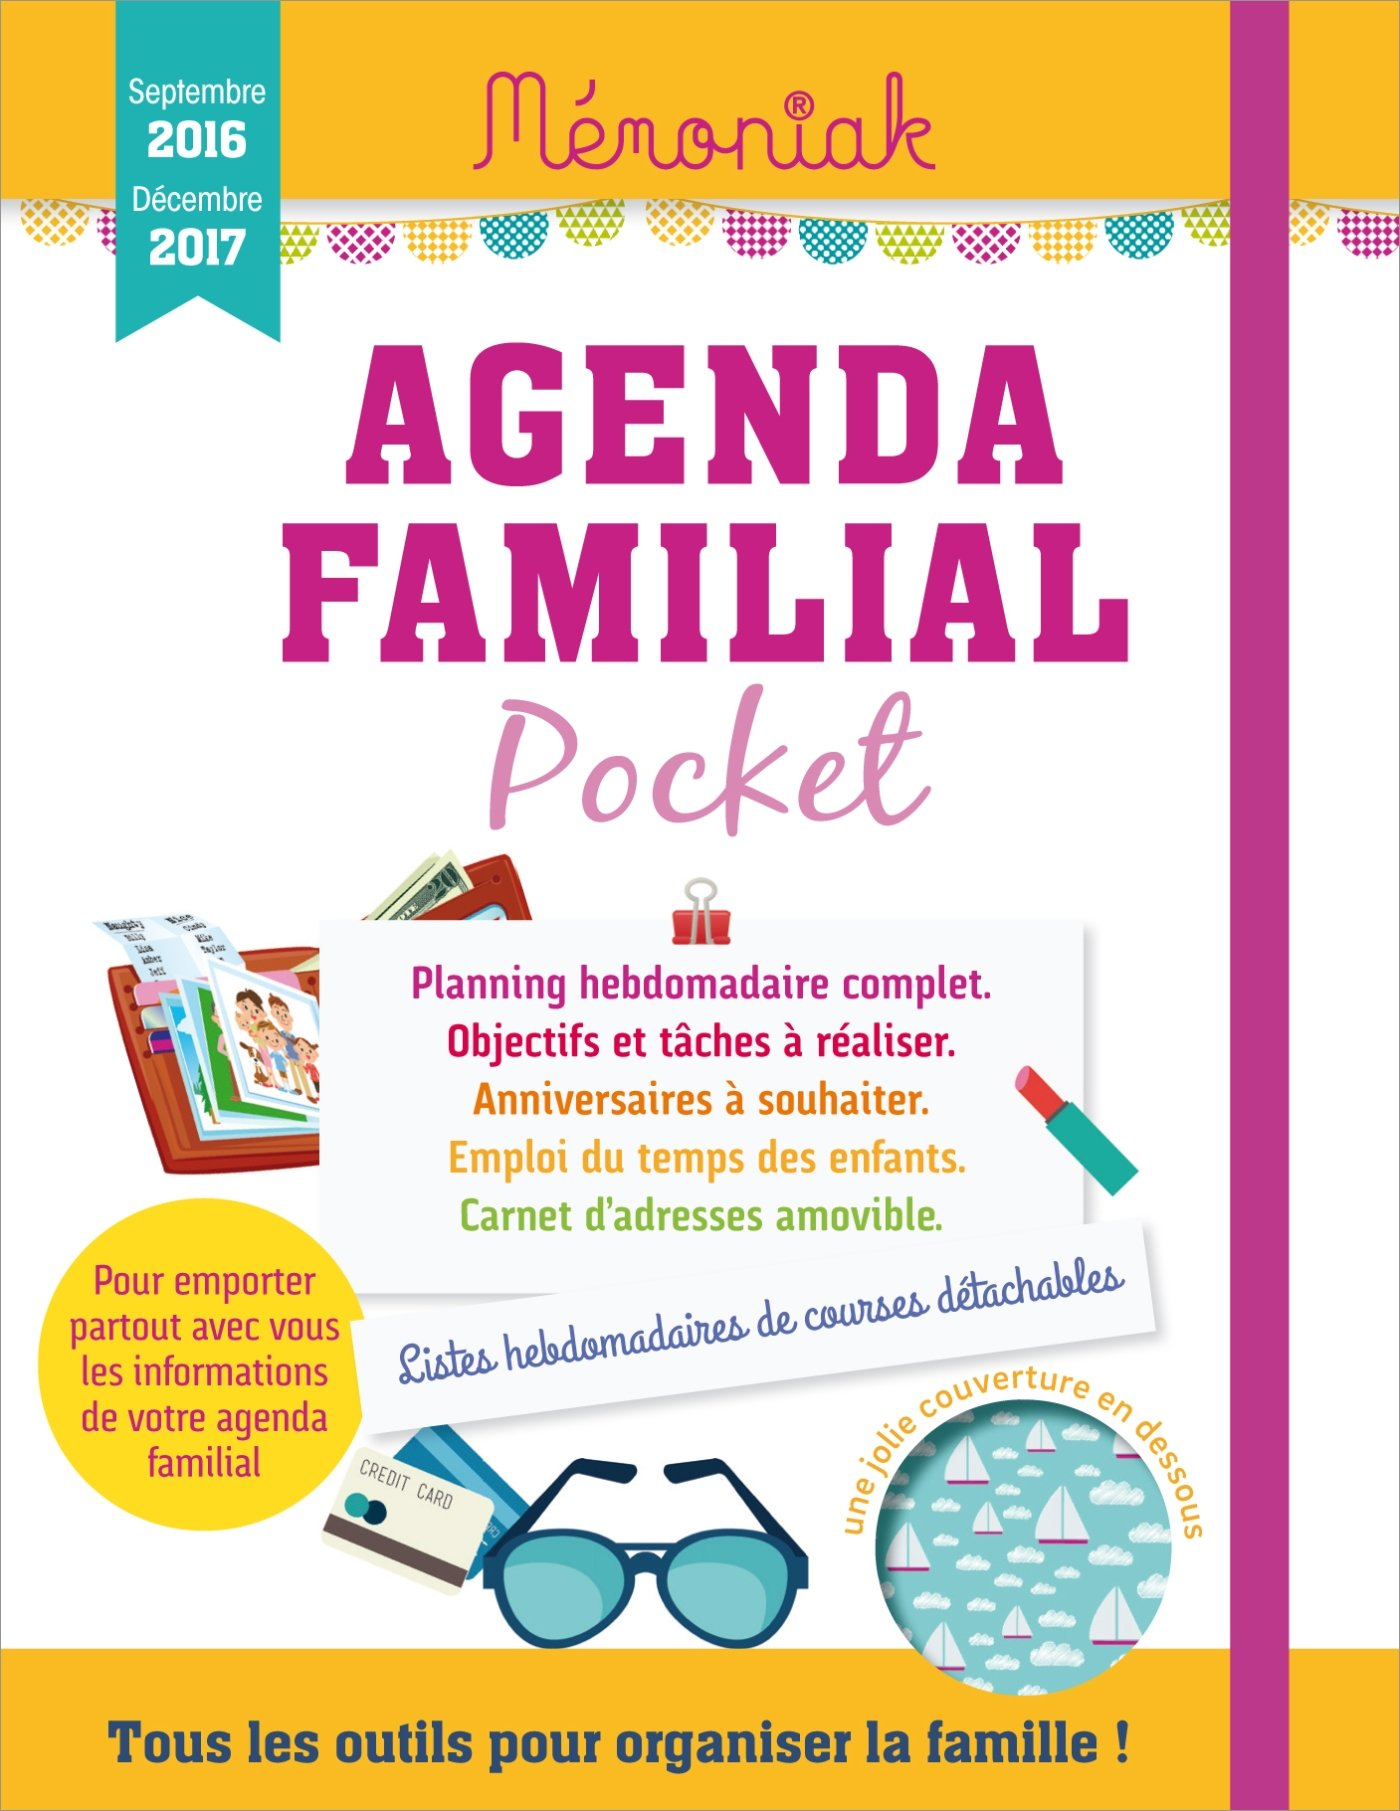 Agenda familial Mémoniak pocket 2016-2017: Amazon.es ...